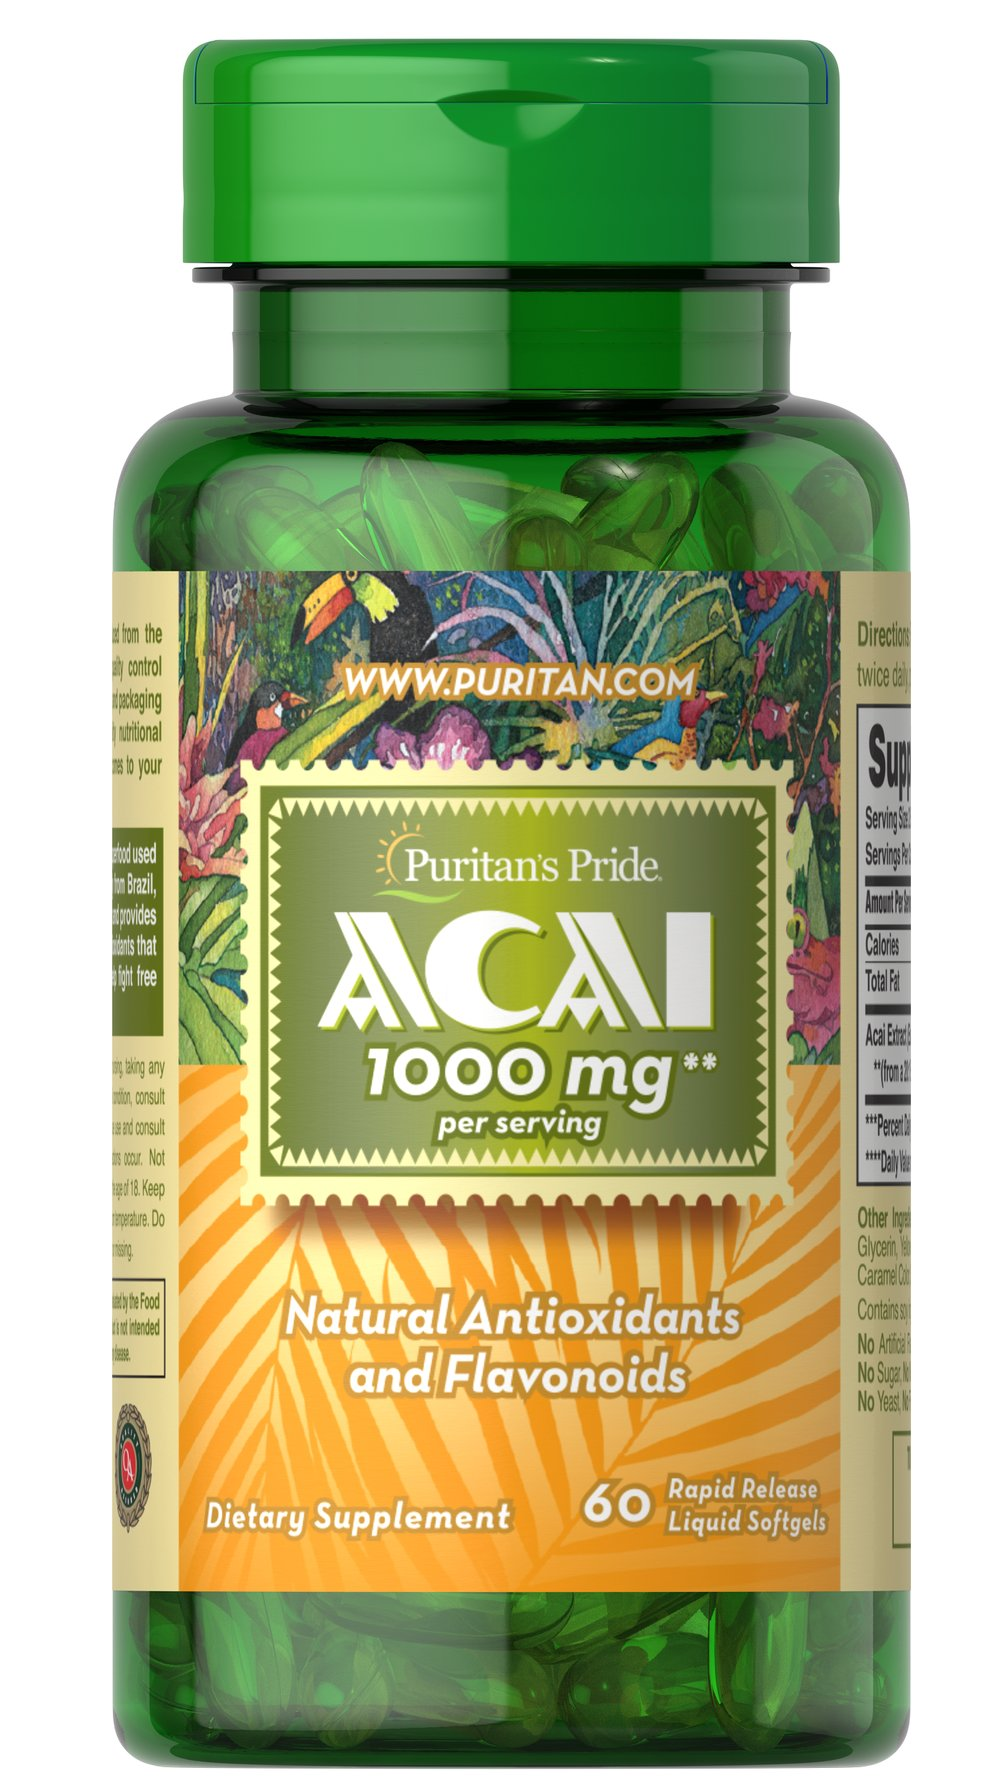 Acai 1000 mg Rapid-release liquid softgels. <p></p>Contains 1000 mg Acai per serving (two softgels).<p></p>Contains natural flavonoids and antioxidants<p></p>Supports overall well-being**<p></p>Helps enrich the vitality of your body and soul**<p></p> 60 Softgels 1000 mg $5.14